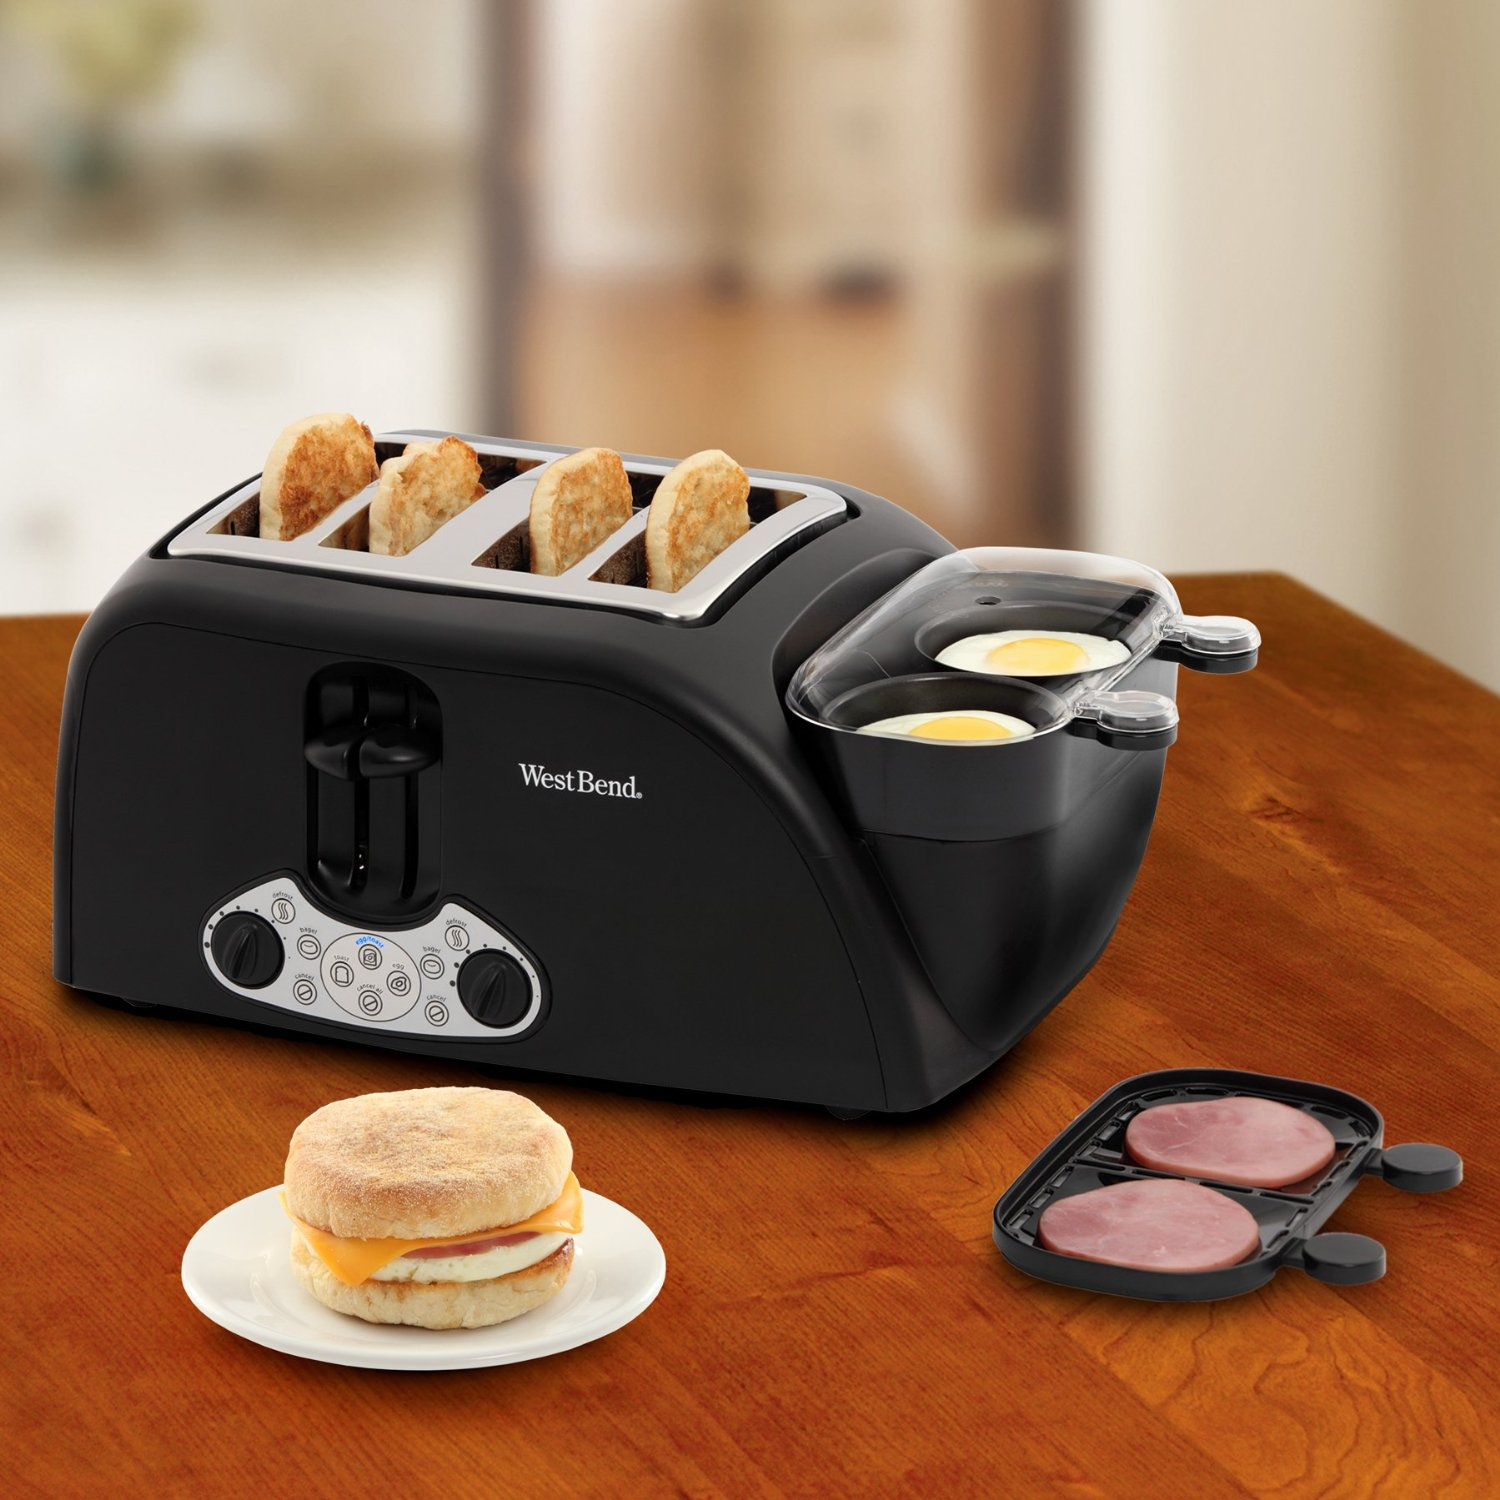 Egg and Muffin Toaster